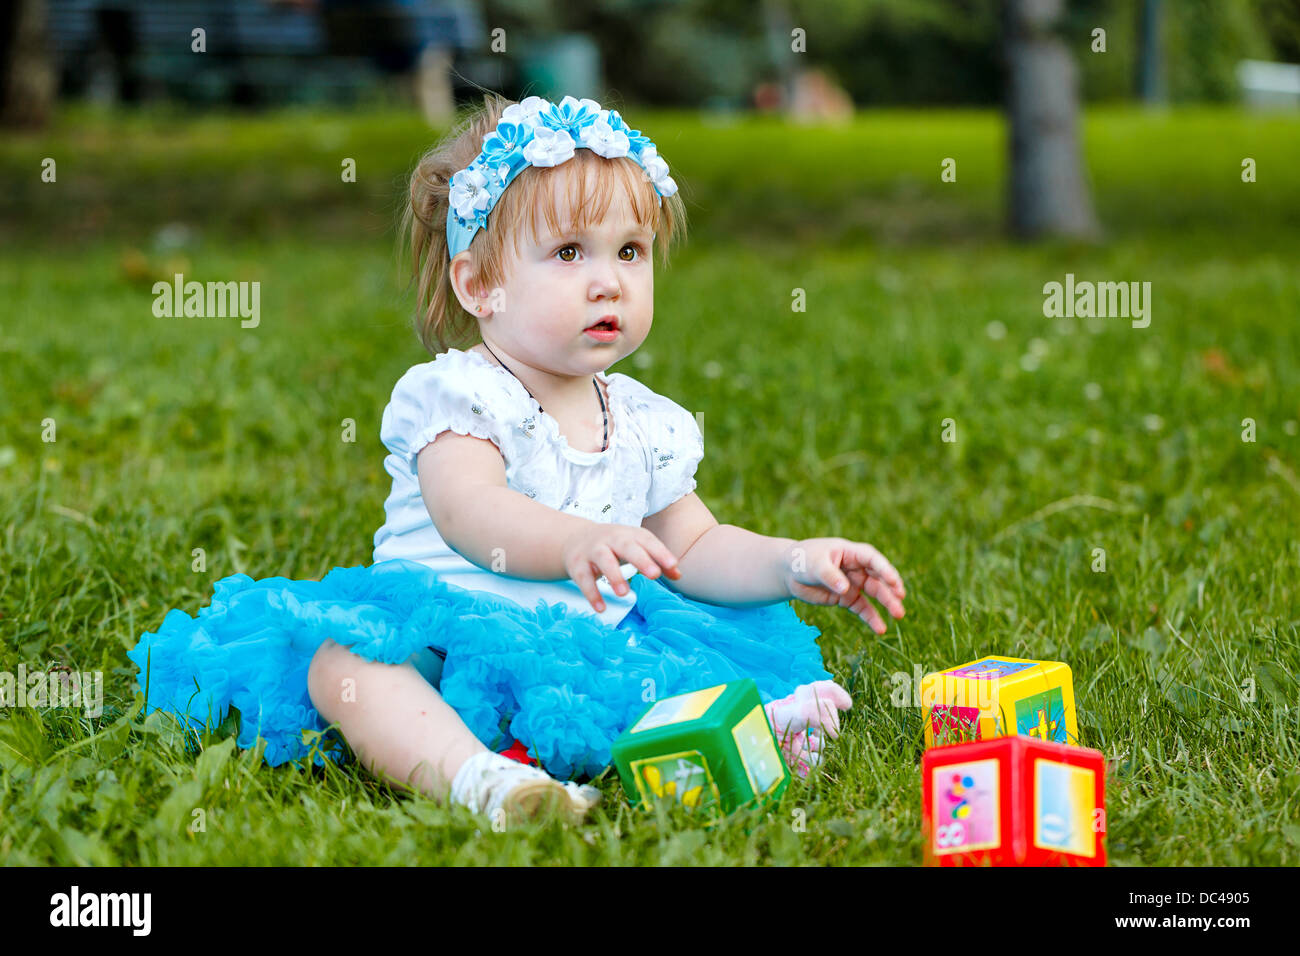 Little girl sitting on the grass and playing with dice in the park - Stock Image